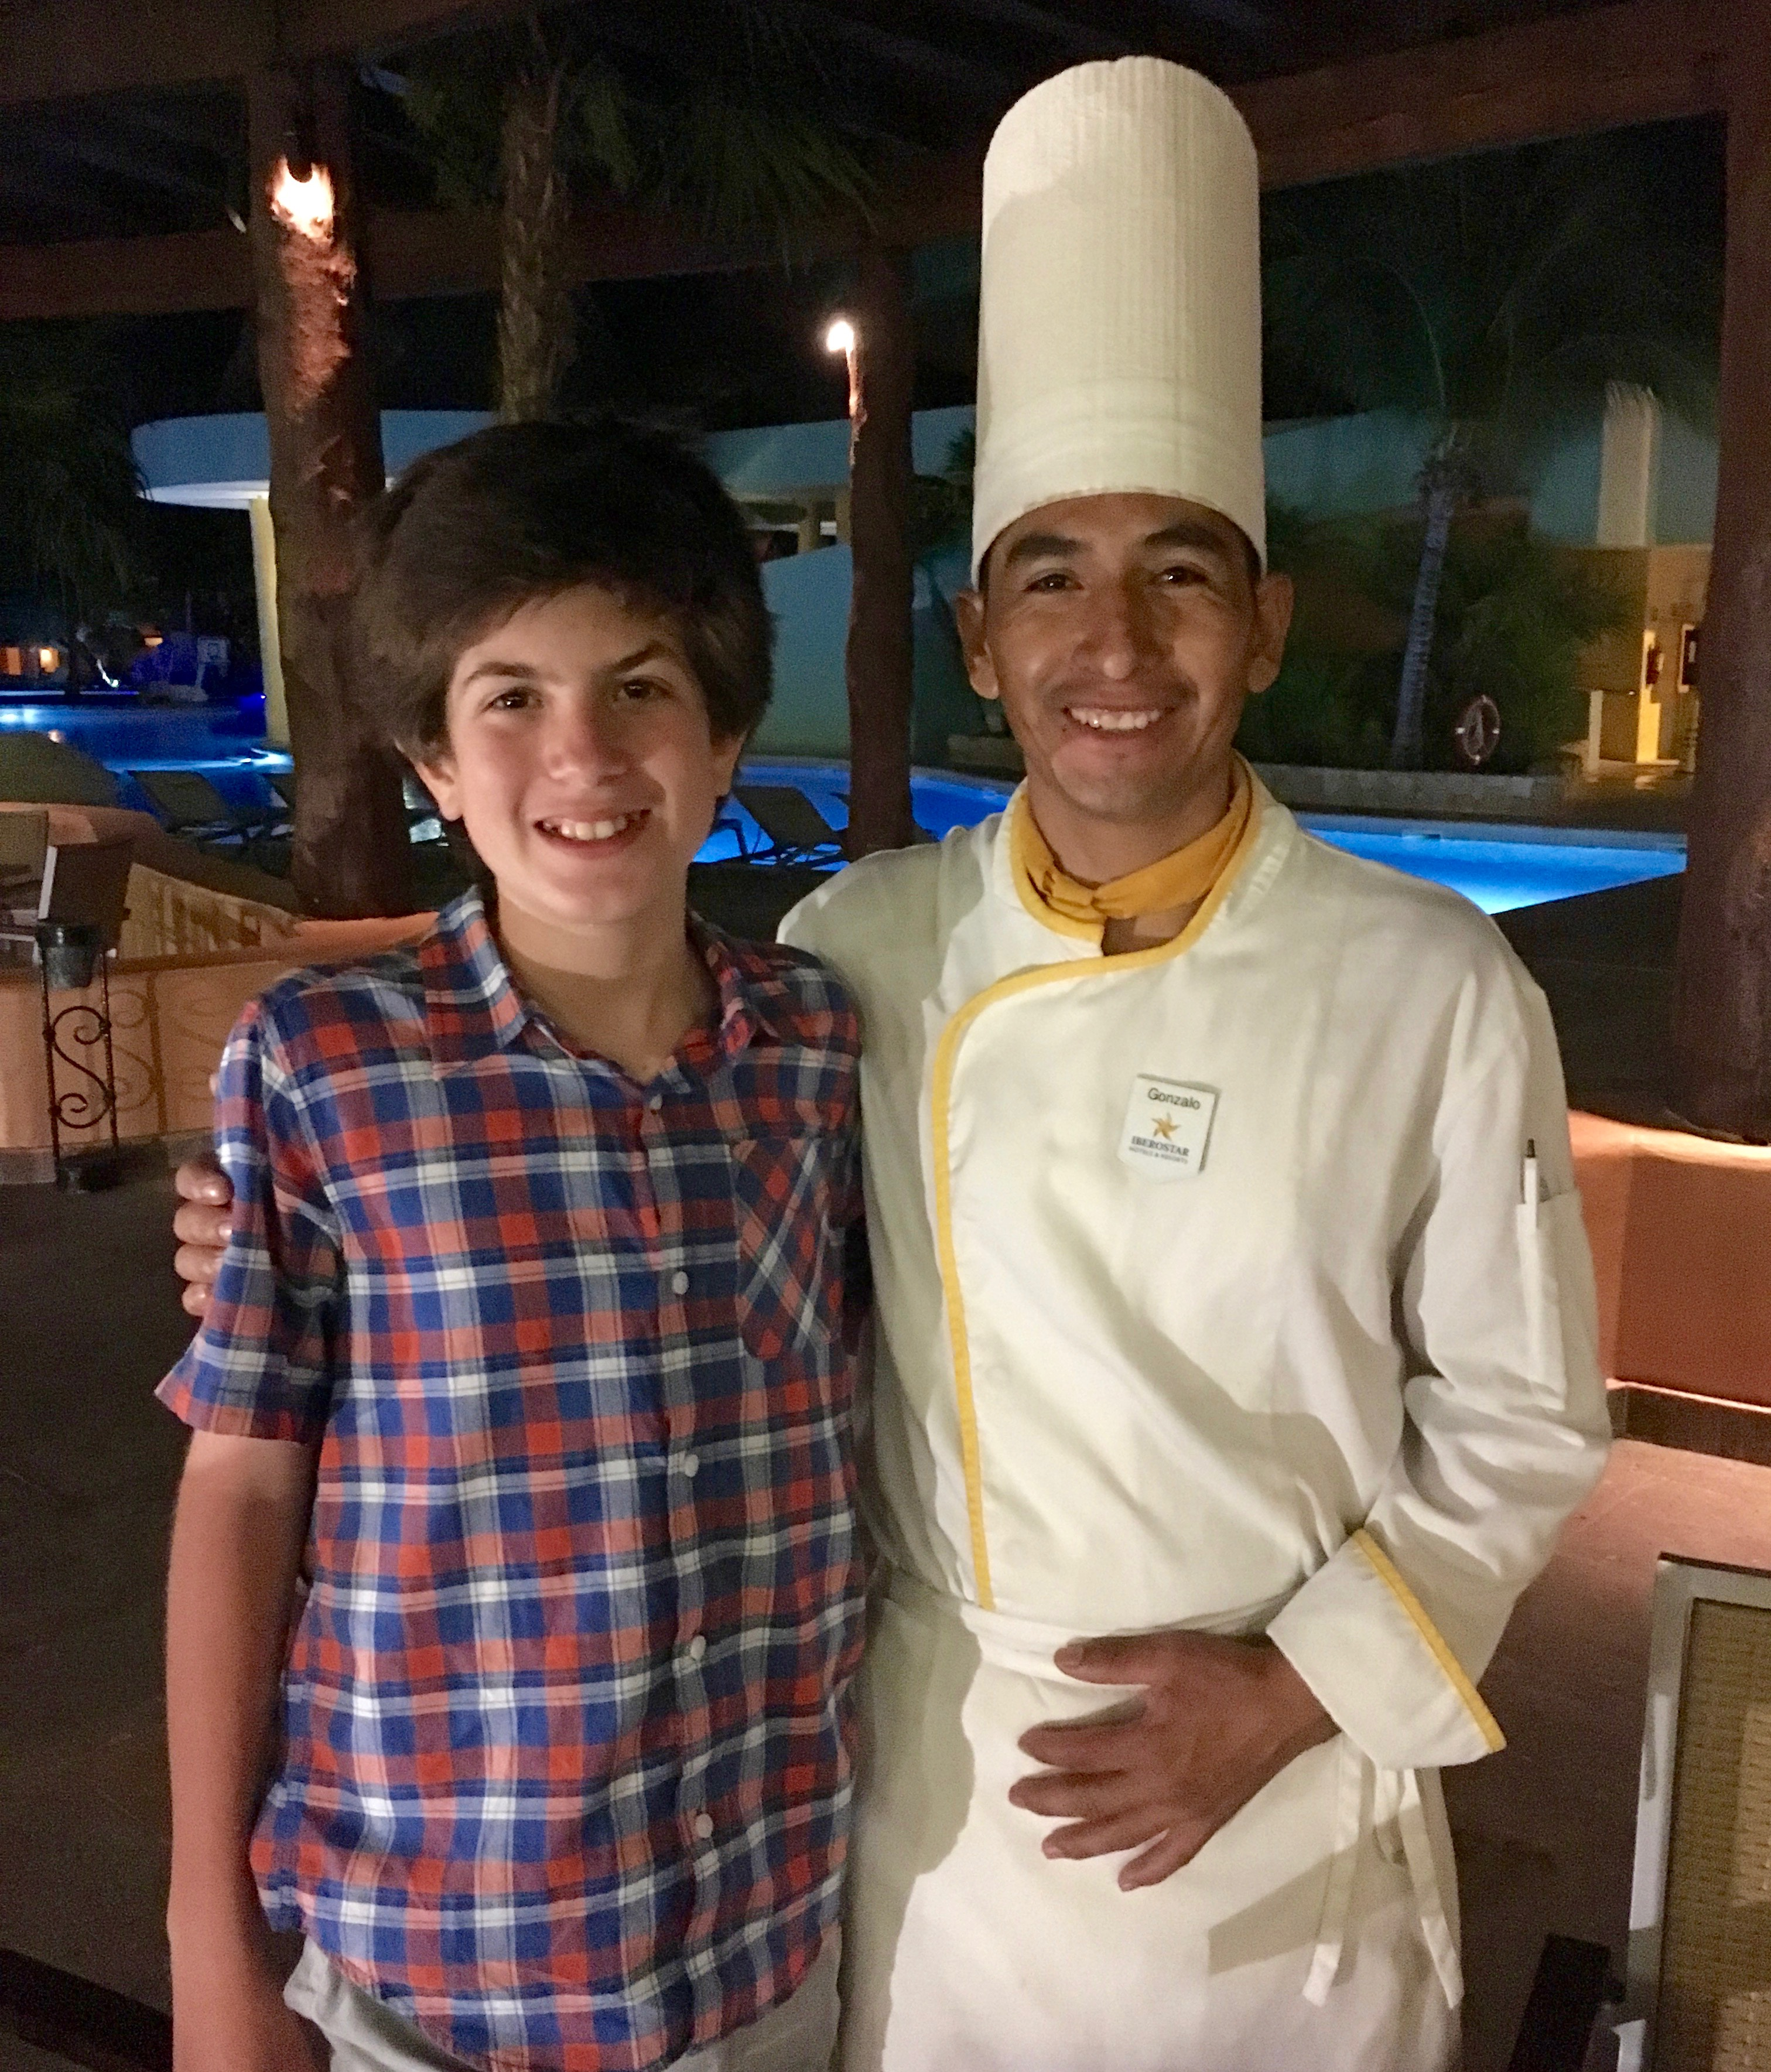 Chef and Noah